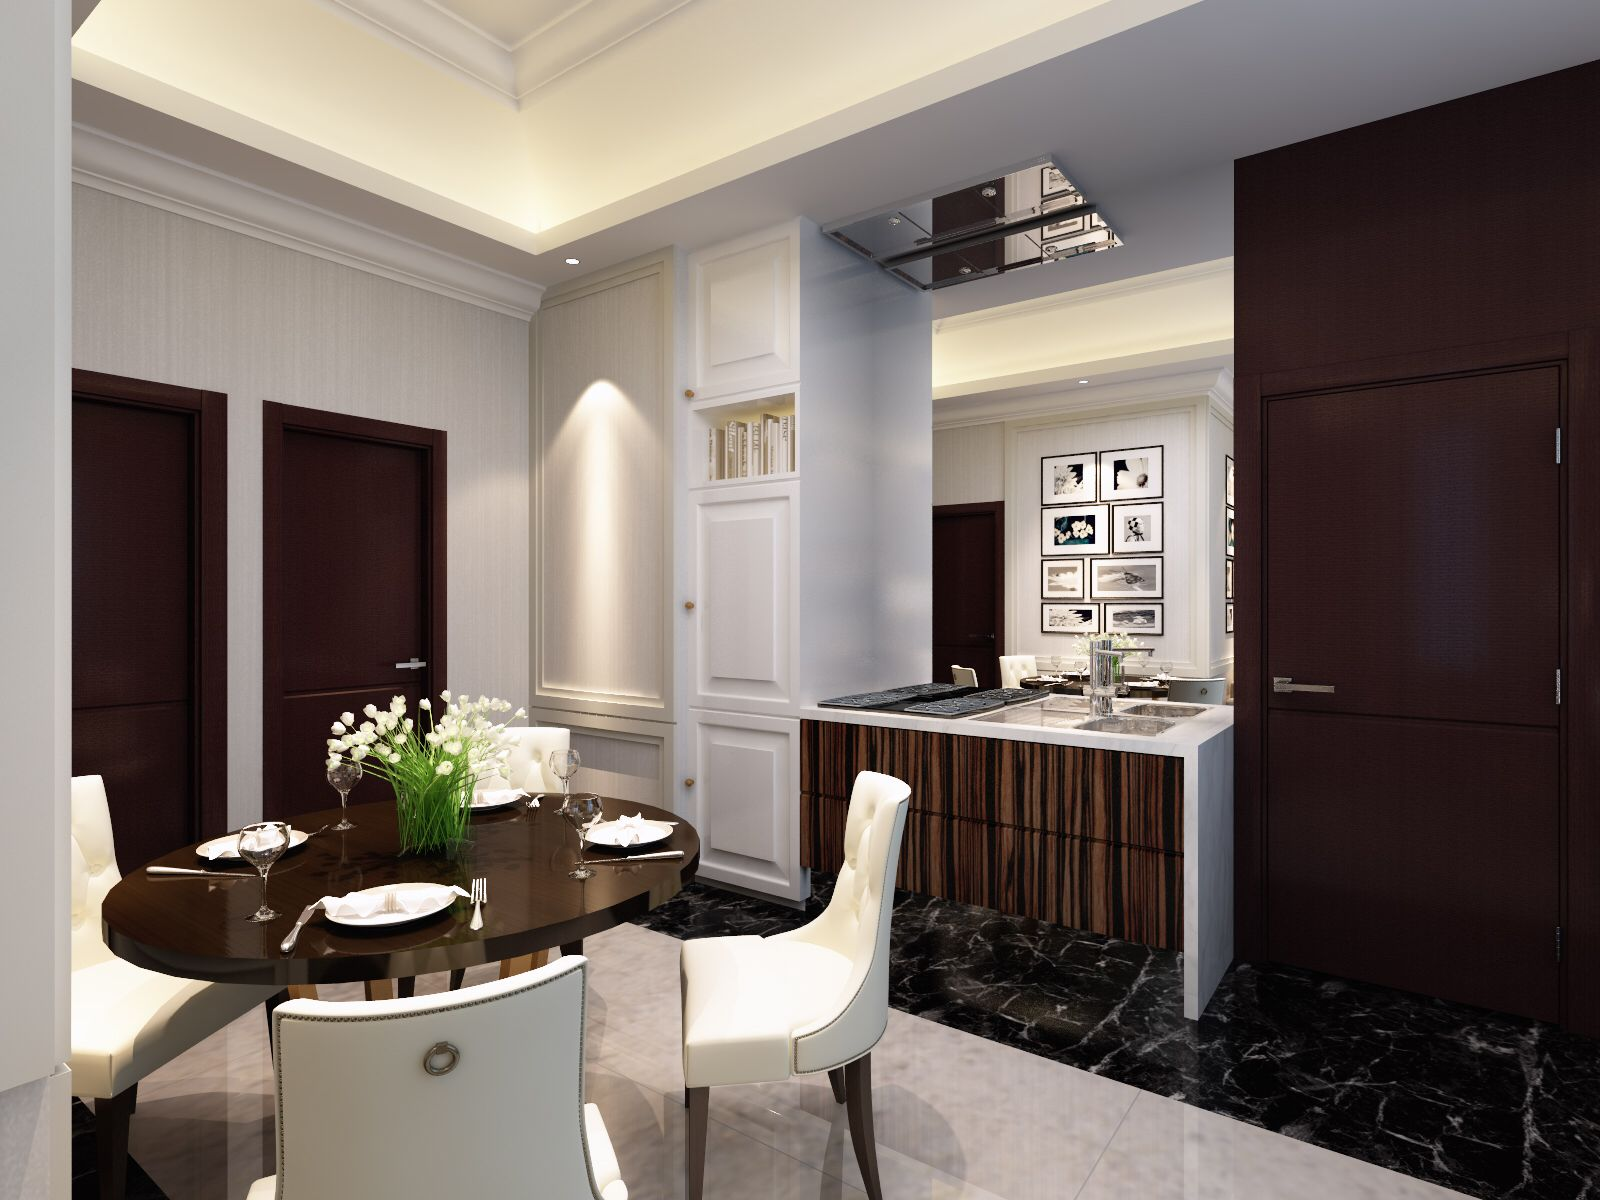 2 Bedroom Apartment Interior Design show unit 2 bedroom apartment panbil apartment @batam indonesia